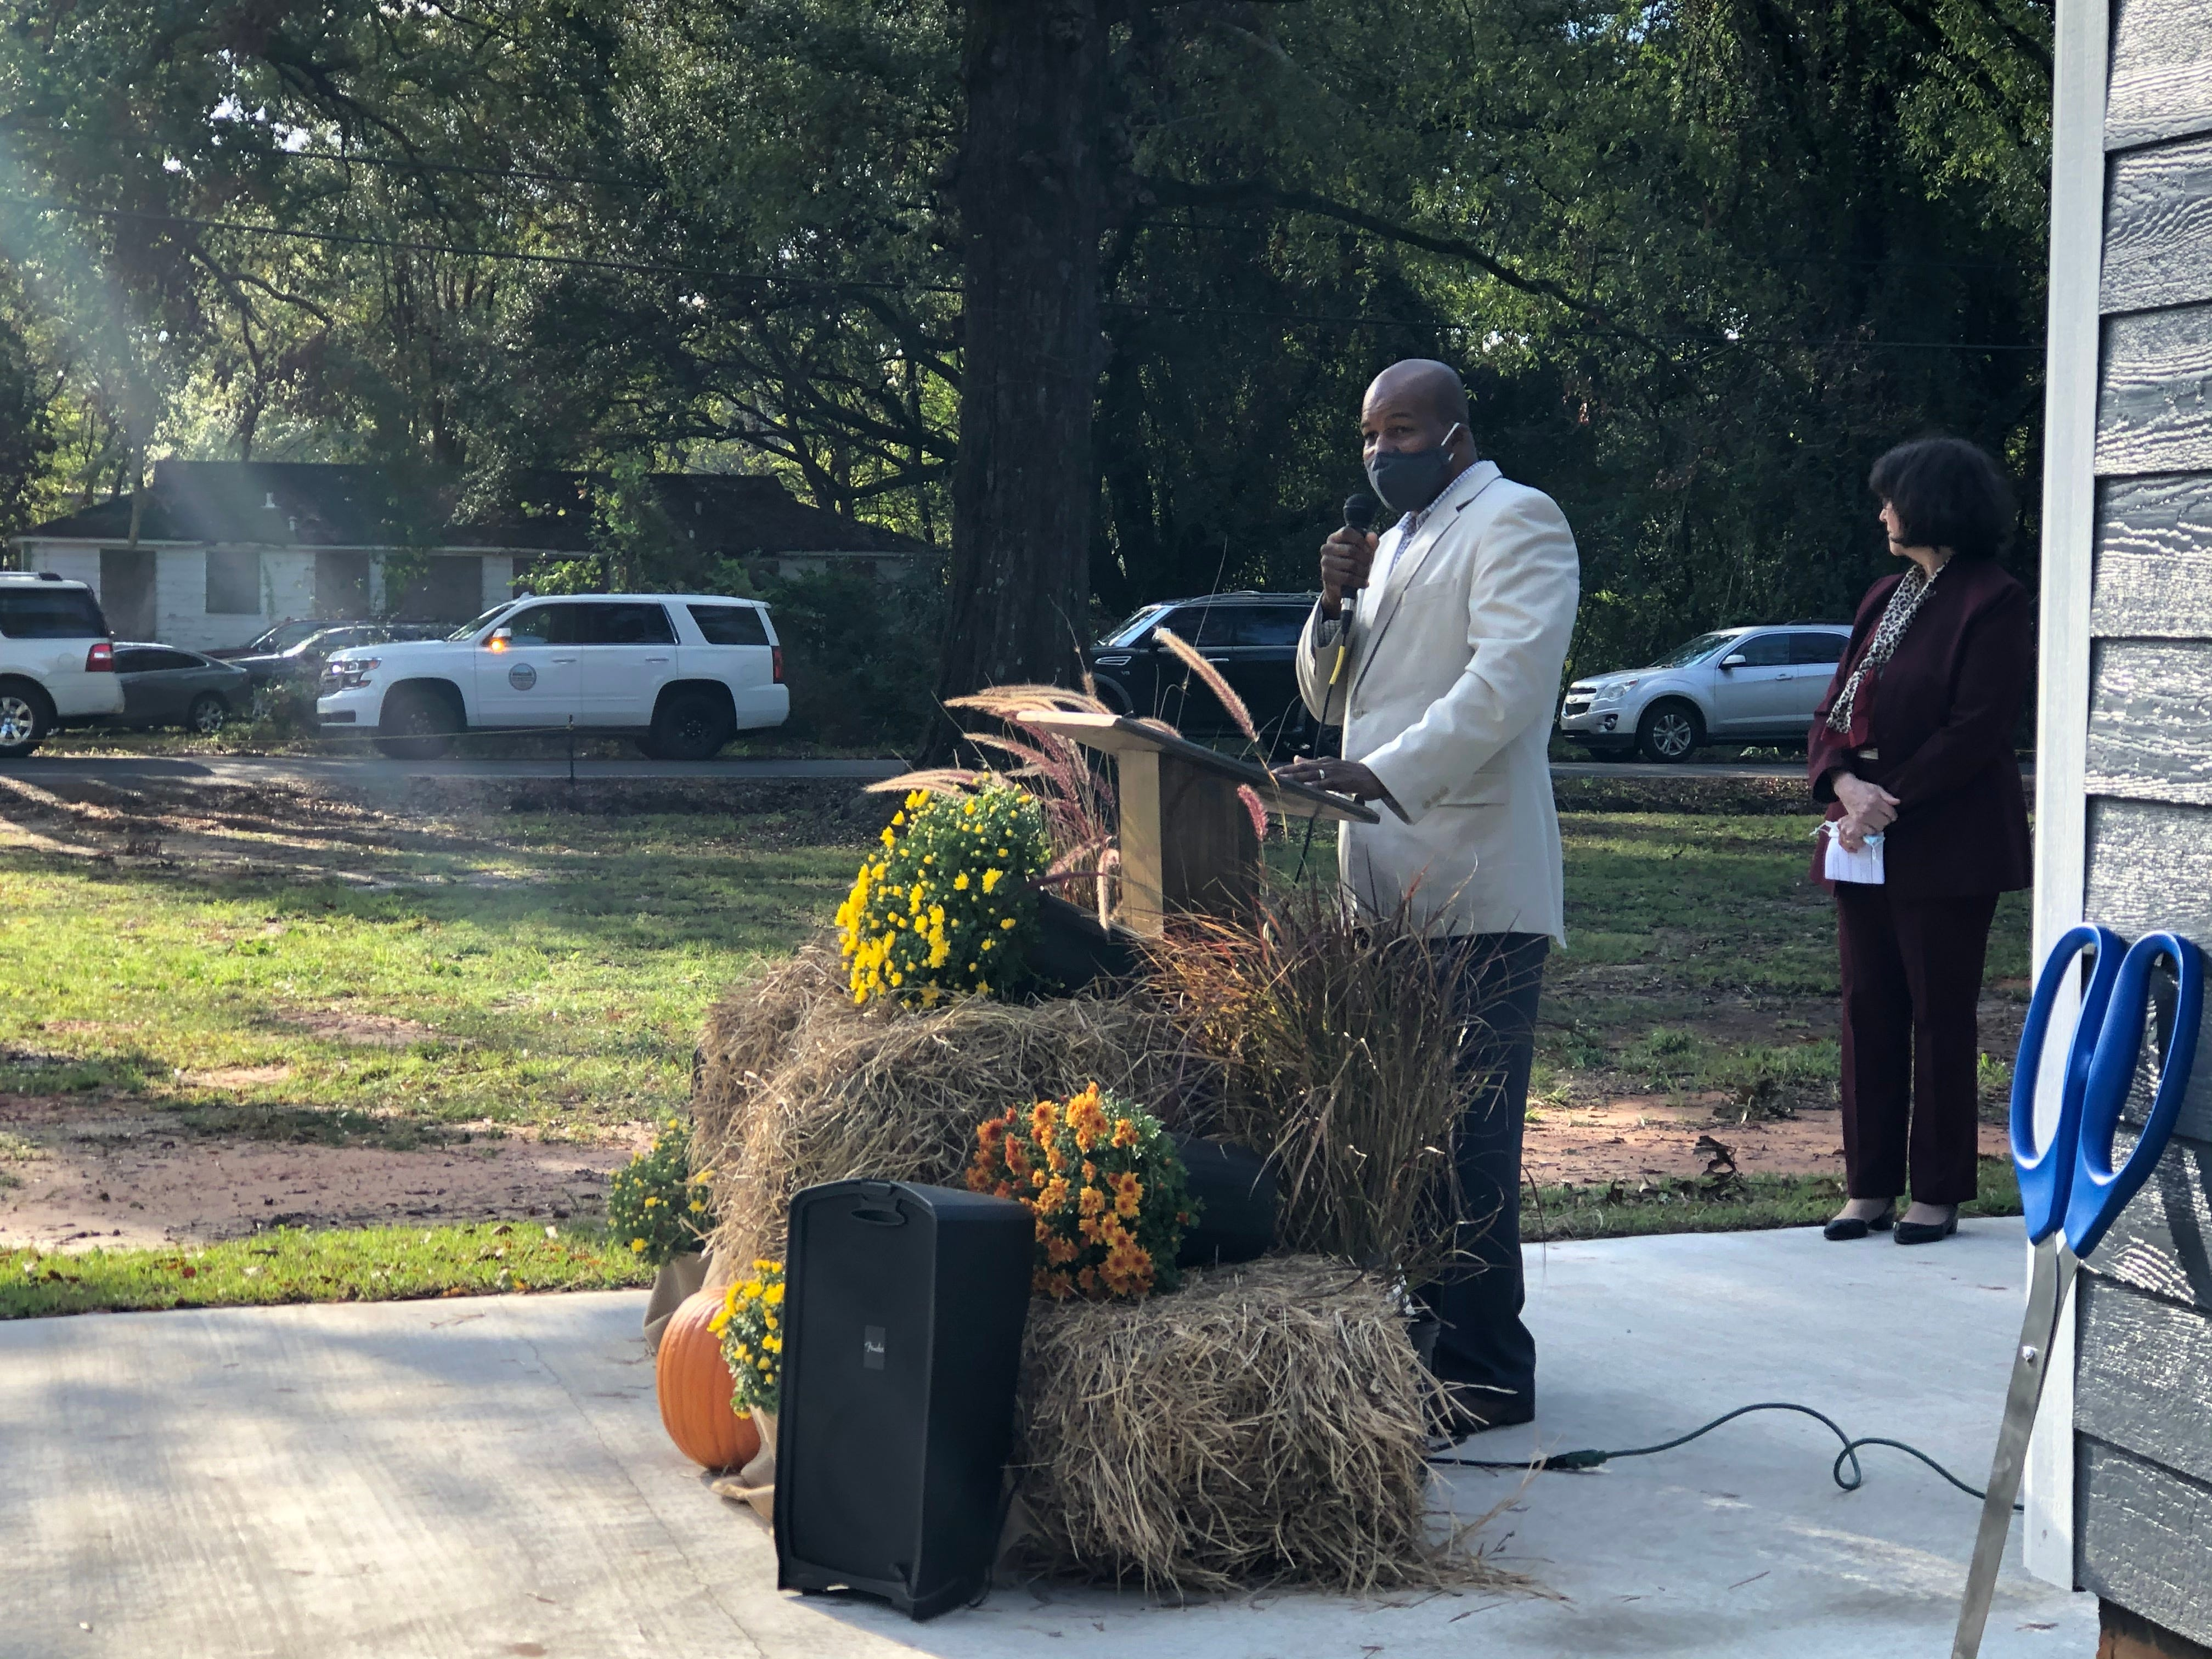 Carday Marshall Sr. speaks at a ribbon-cutting for 23 new Monroe Housing Authority properties on South Third and South Fourth Street in Monroe on October 29, 2020.